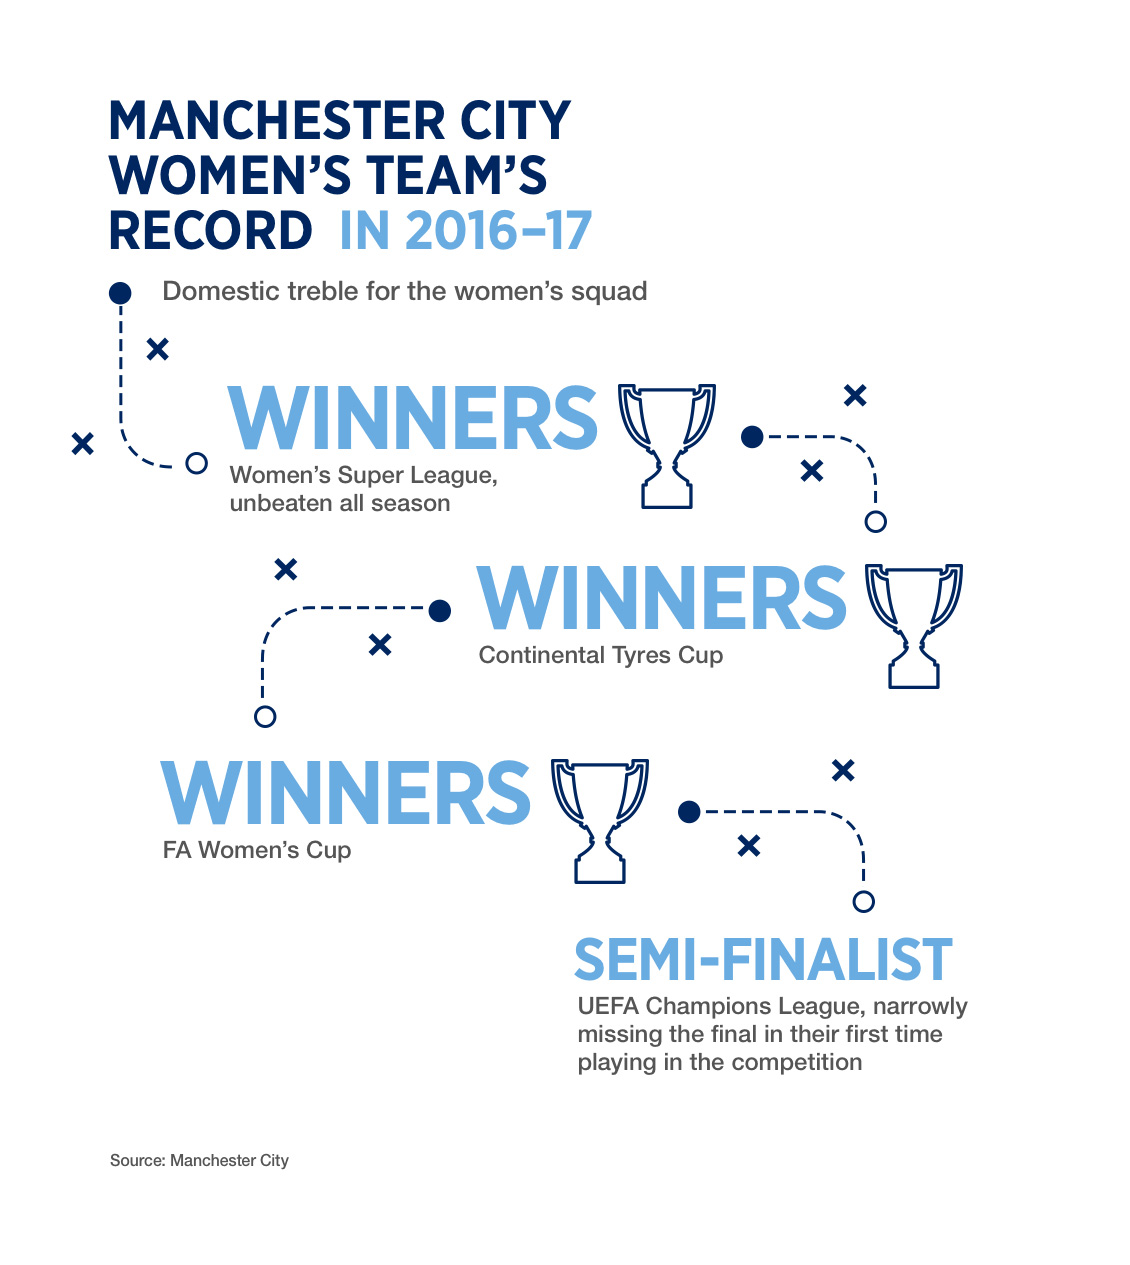 Manchester City Women's record in 2016-17 including a domestic treble